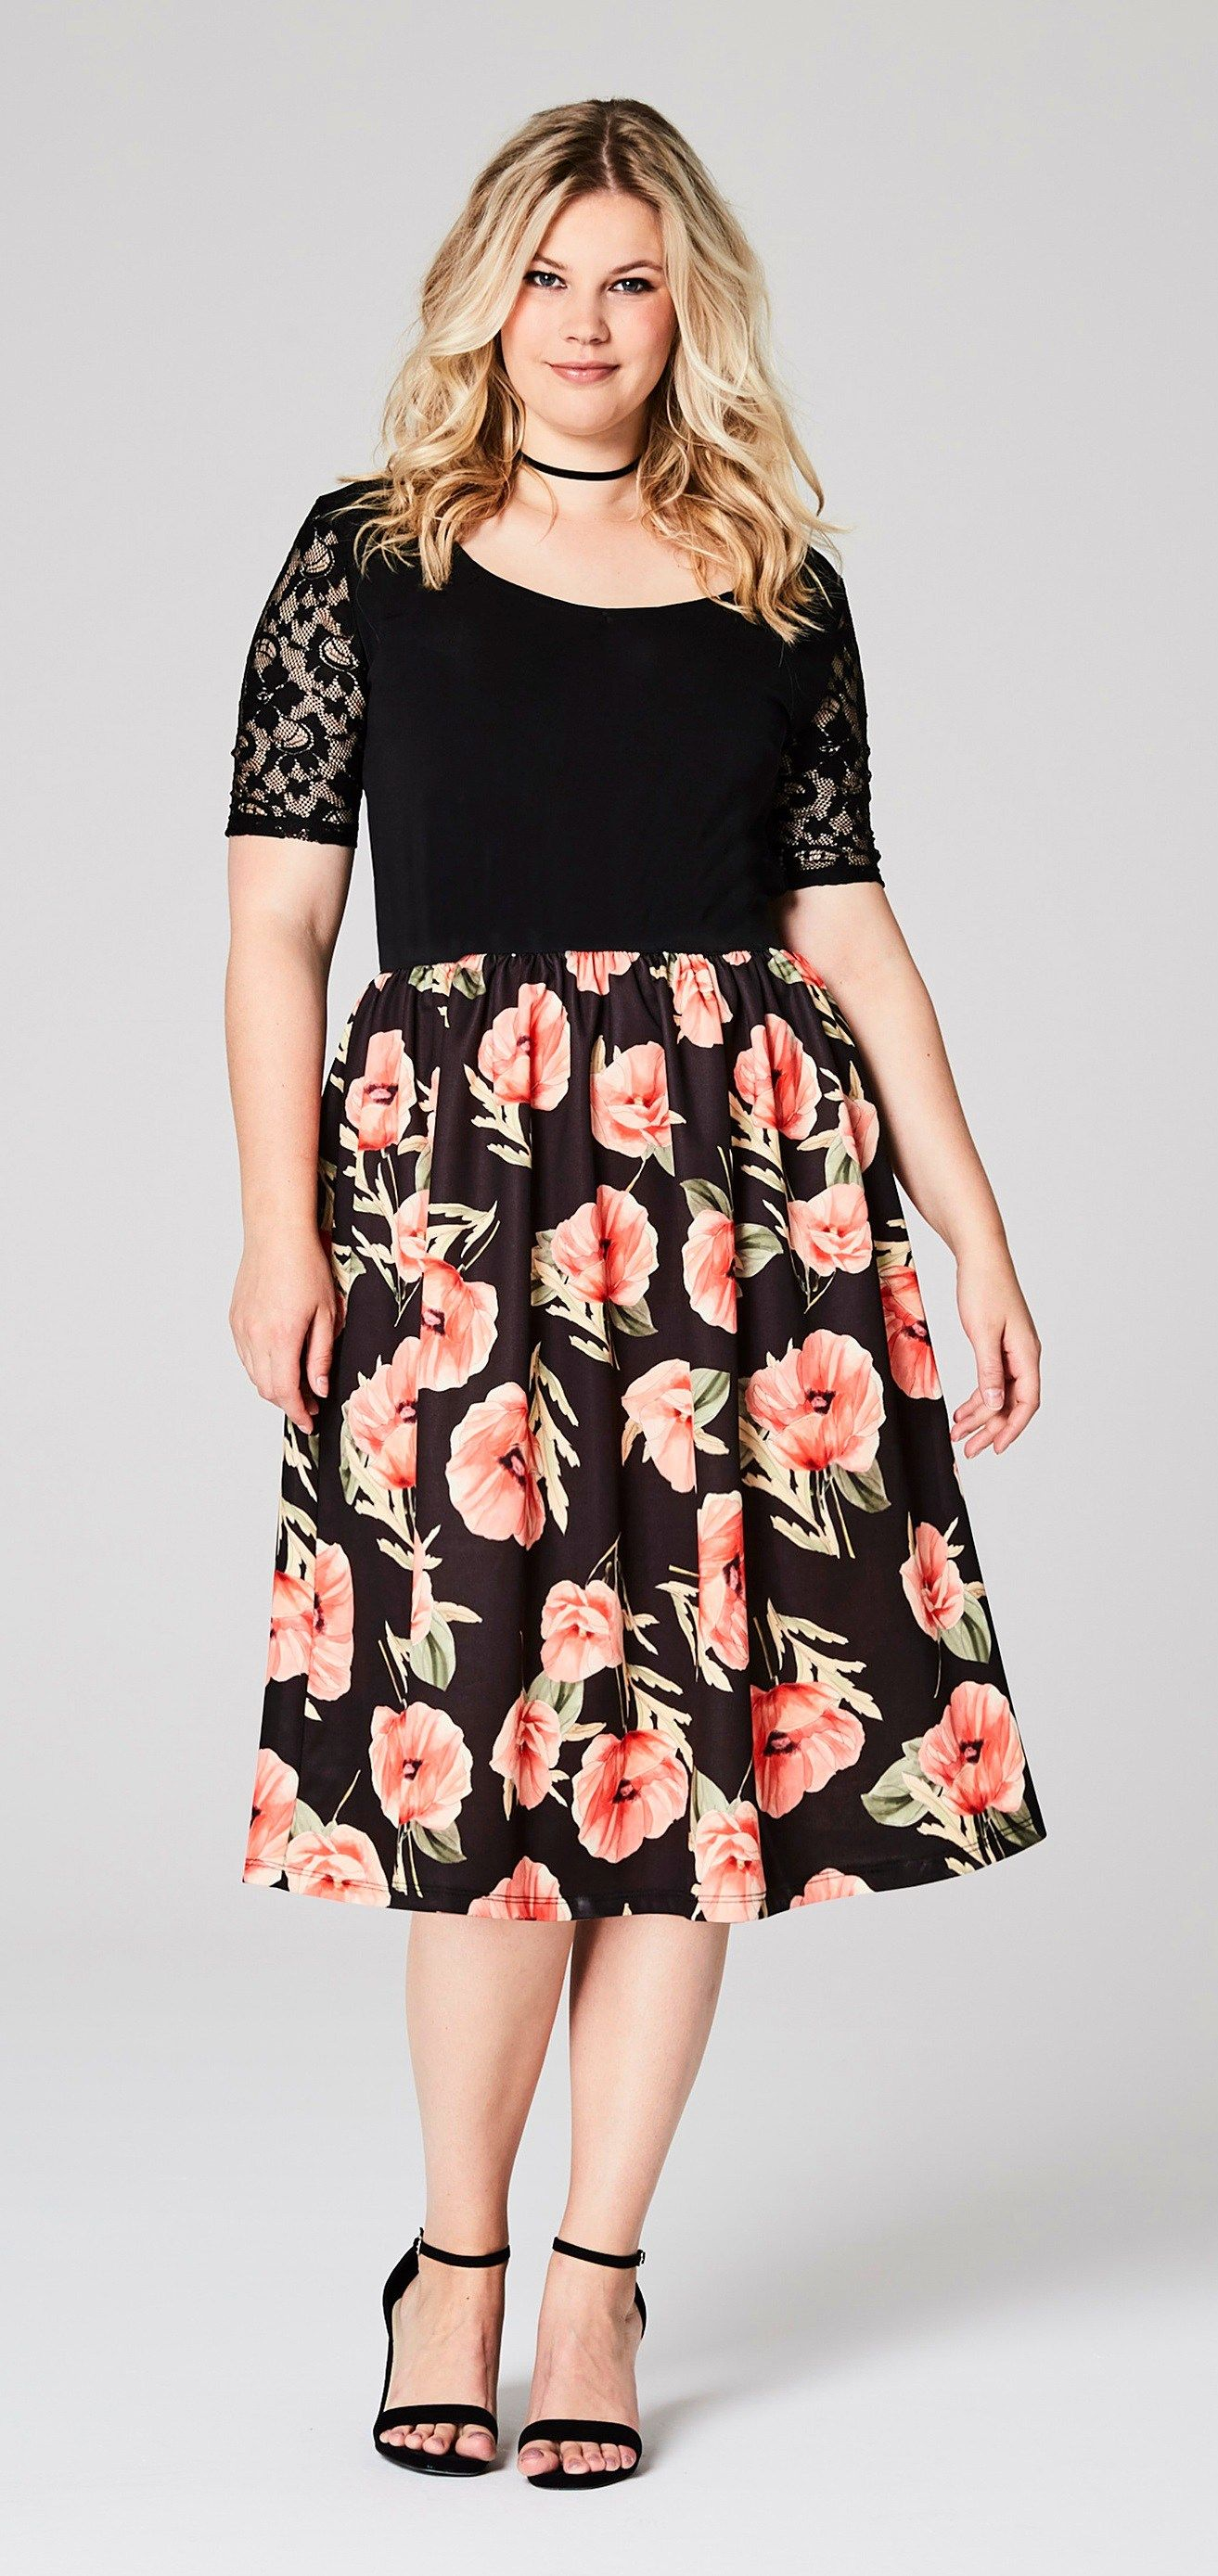 45 Plus Size Wedding Guest Dresses With Sleeves Alexa Webb Plus Size Black Dresses Plus Size Wedding Guest Dresses Plus Size Cocktail Dresses [ 1683 x 736 Pixel ]